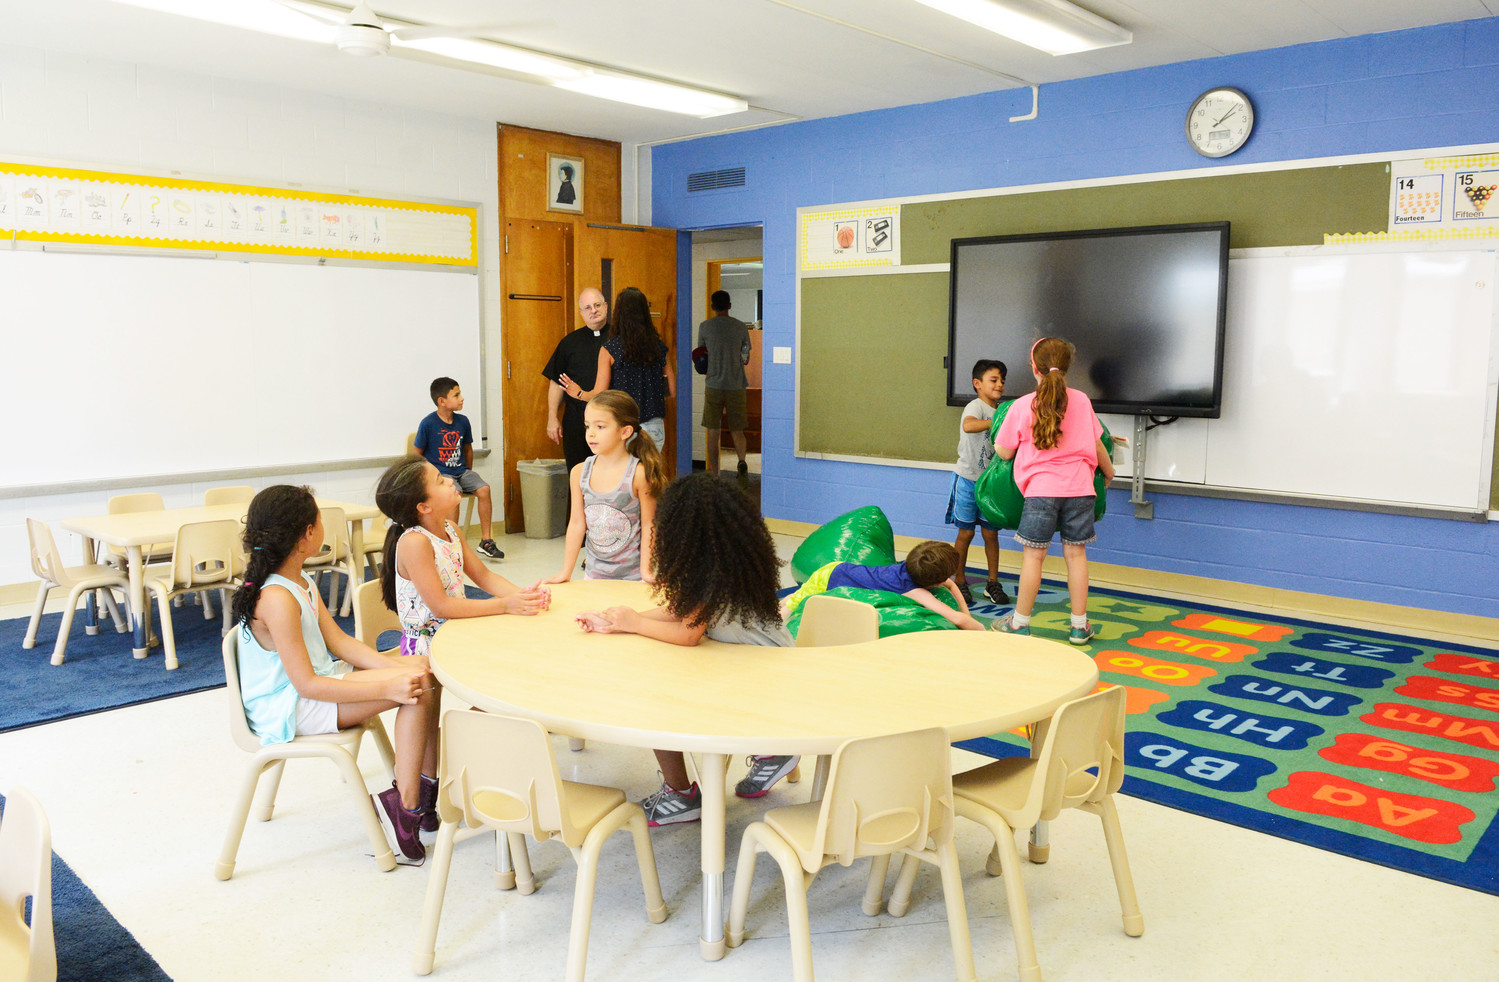 Students visit one of the remodeled classrooms in St. Elizabeth Ann Seton School during an open house Aug. 8, as Father Robert Quarato, pastor of the parish, looks on.